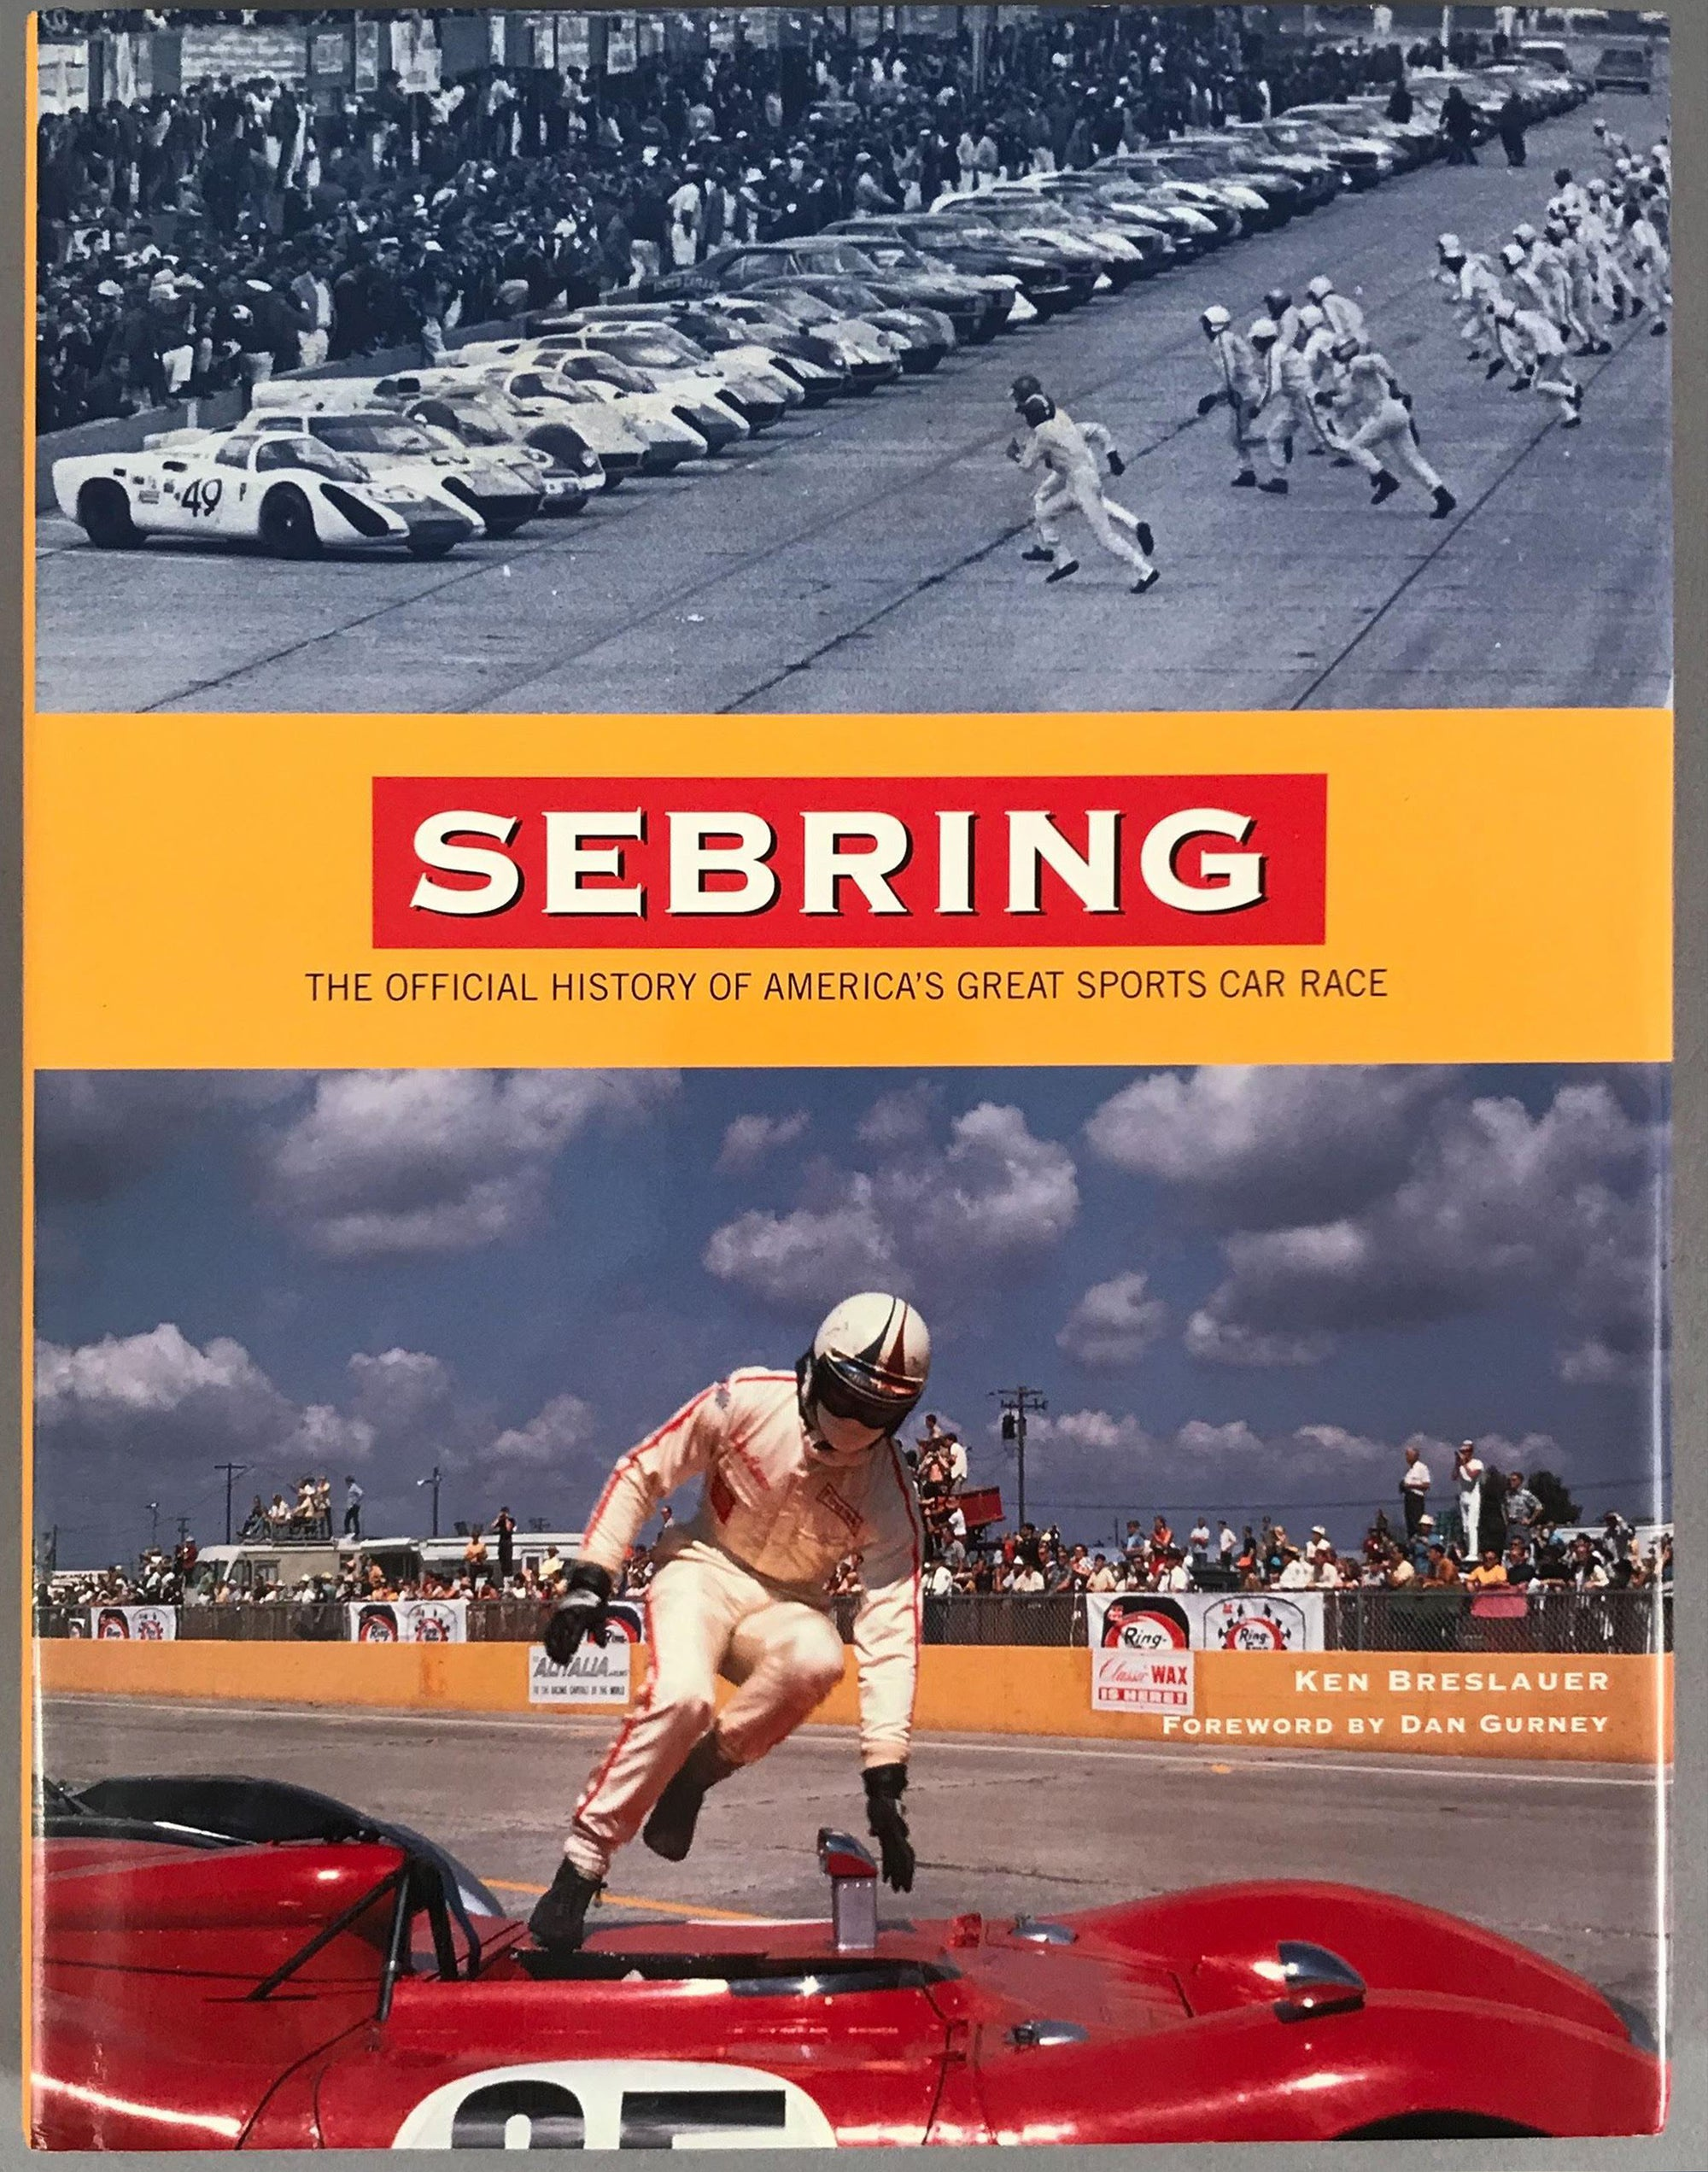 Sebring - The Official History of America's Great Sports Car Race by Ken Breslauer